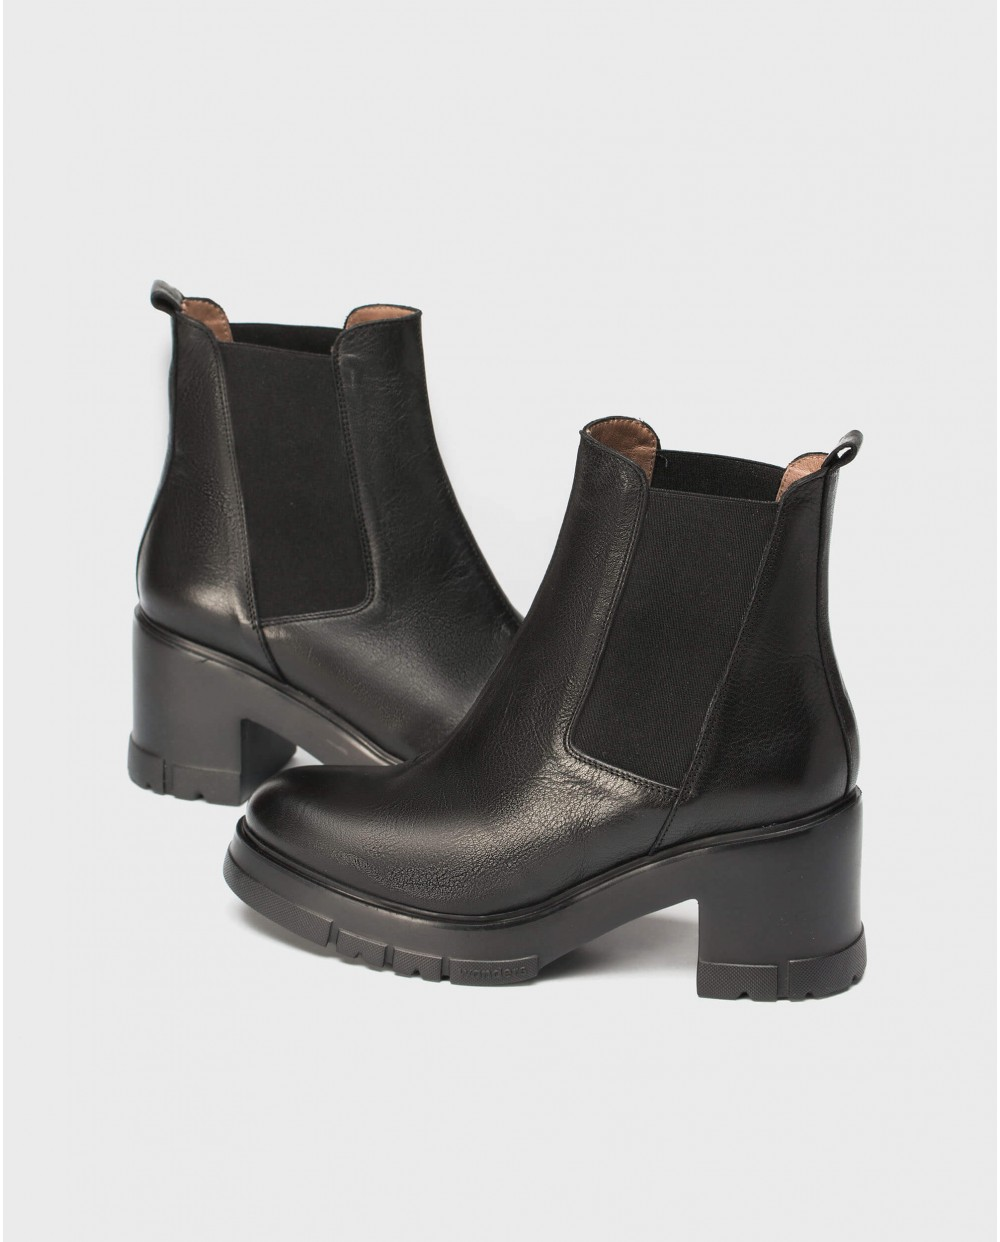 Ankle boot with track sole and elastic